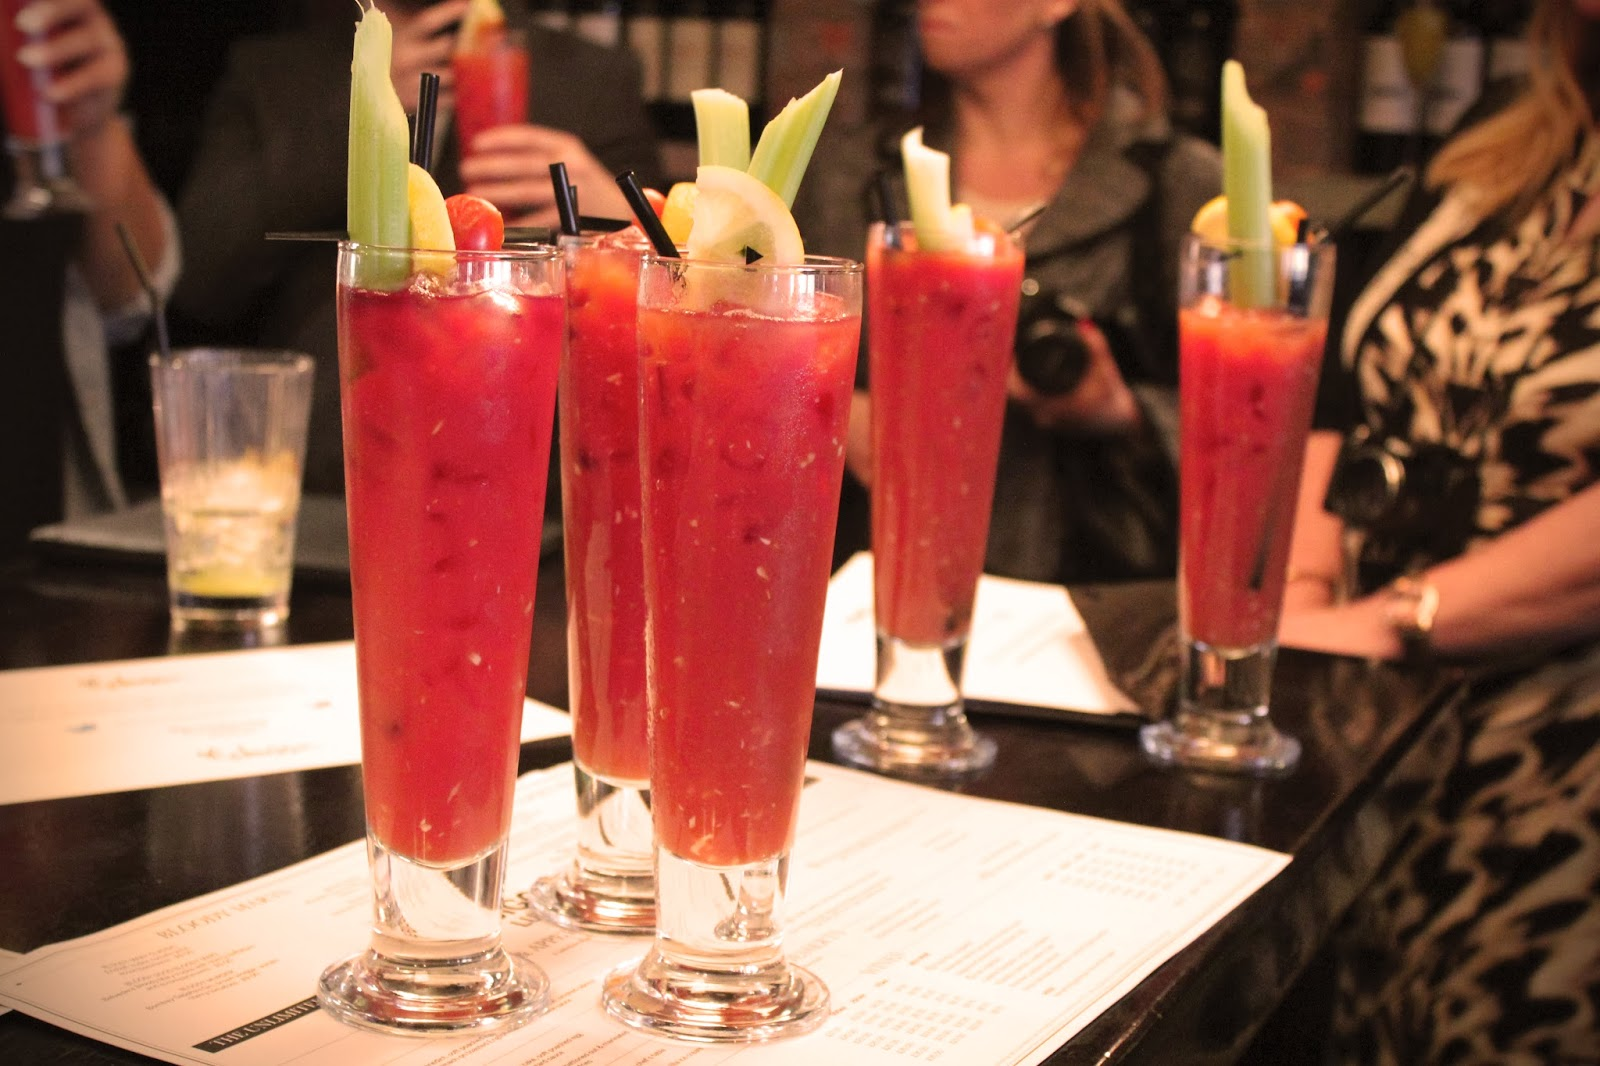 Bloody Mary's with Sunday Brunch at the Malmaison Hotel in Birmingham